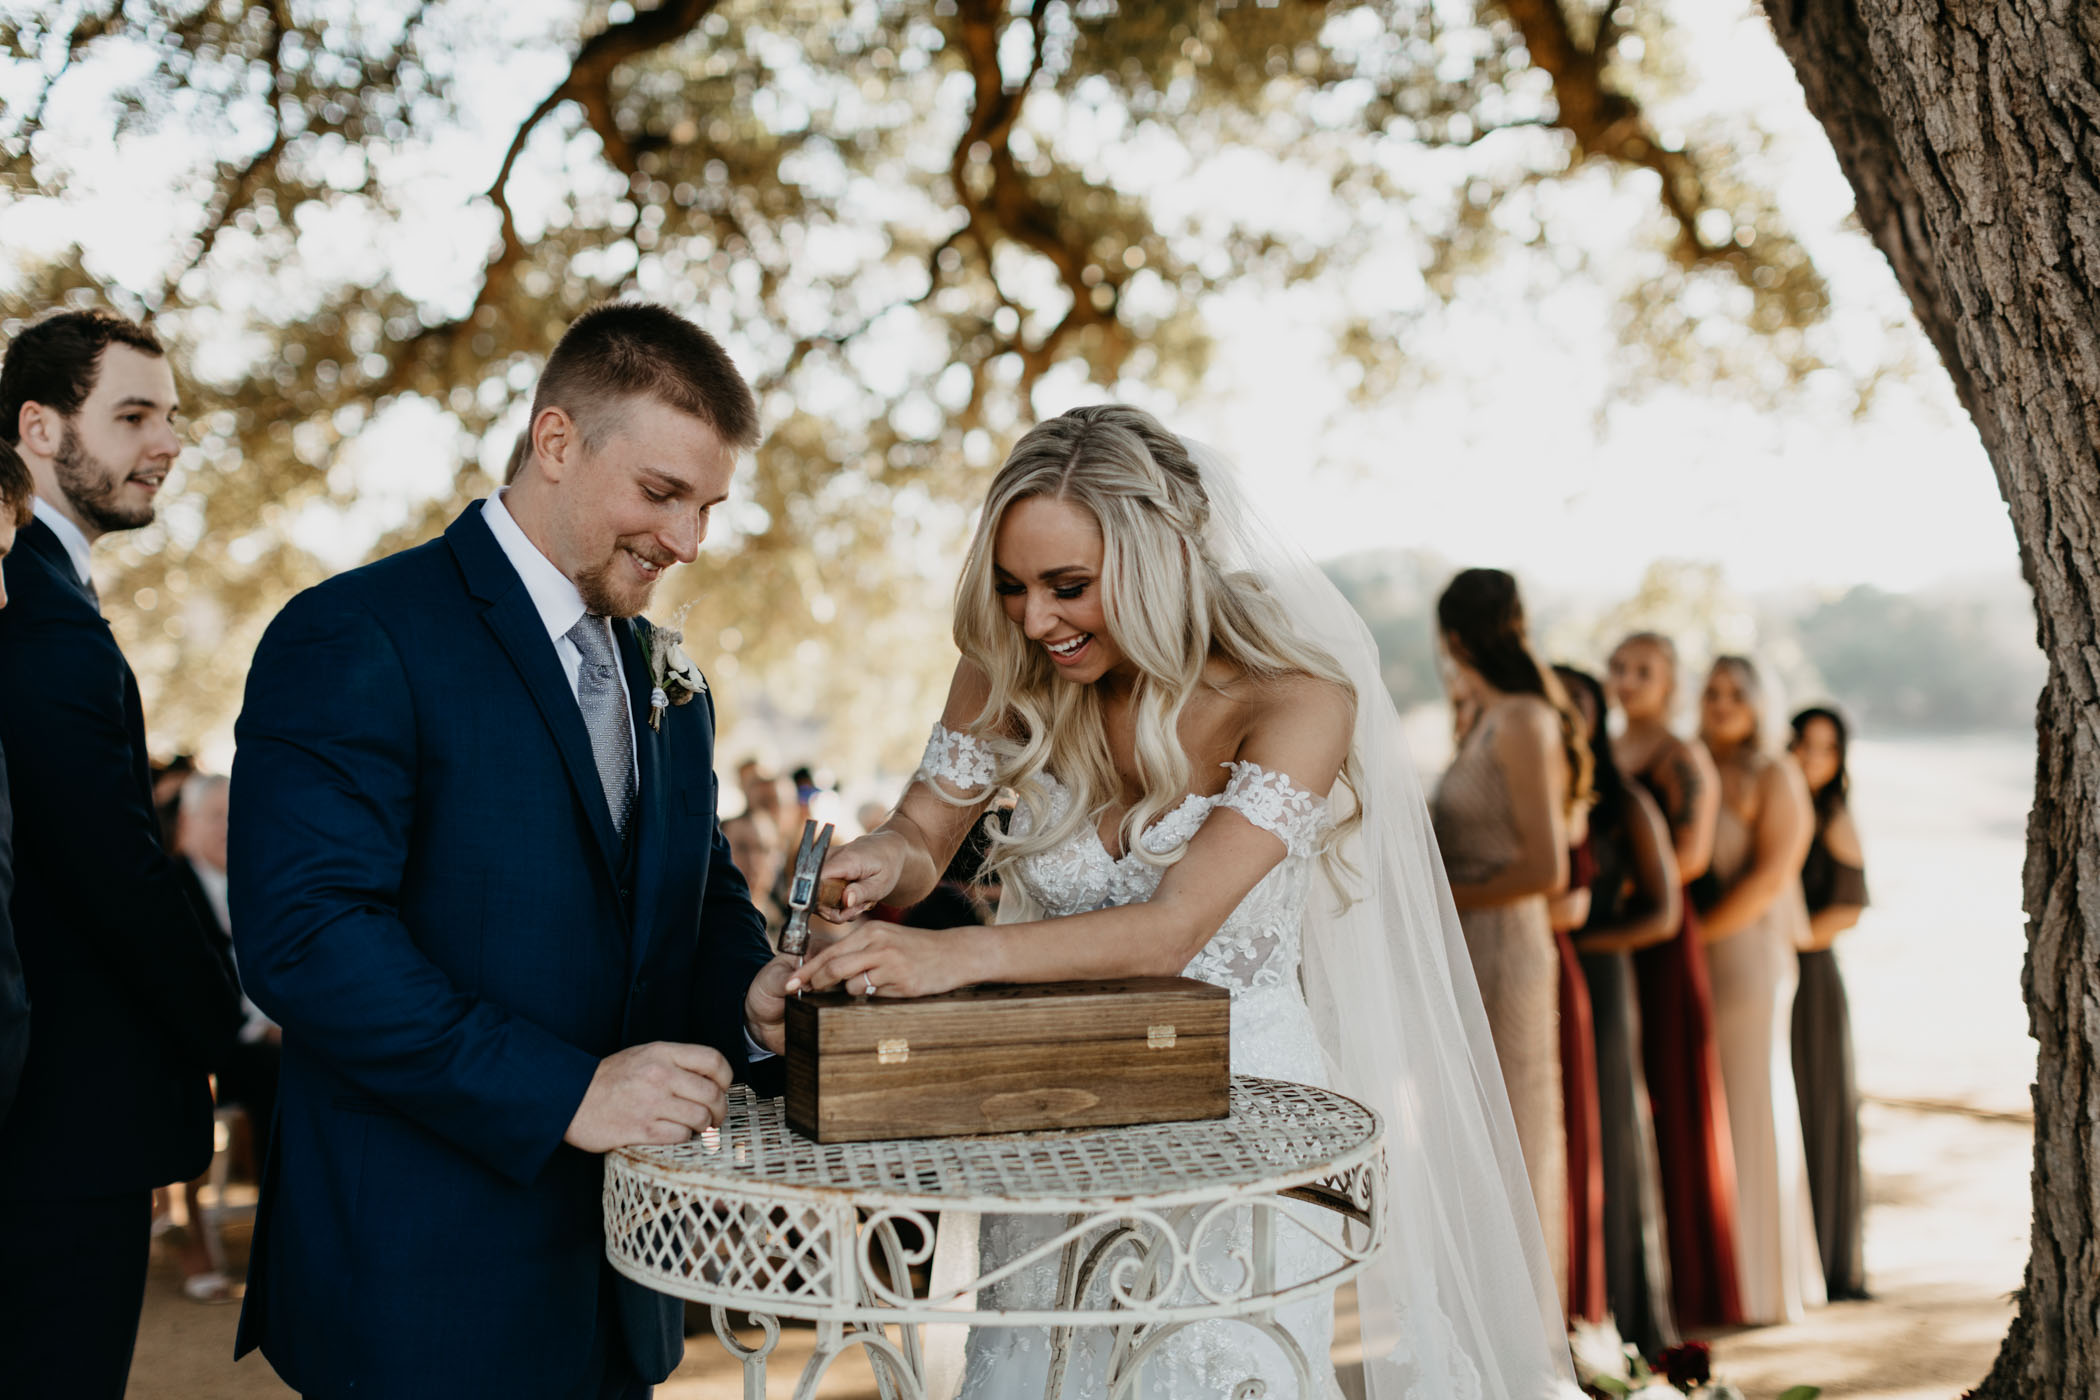 bride and groom hammering wine into a box during wedding ceremony